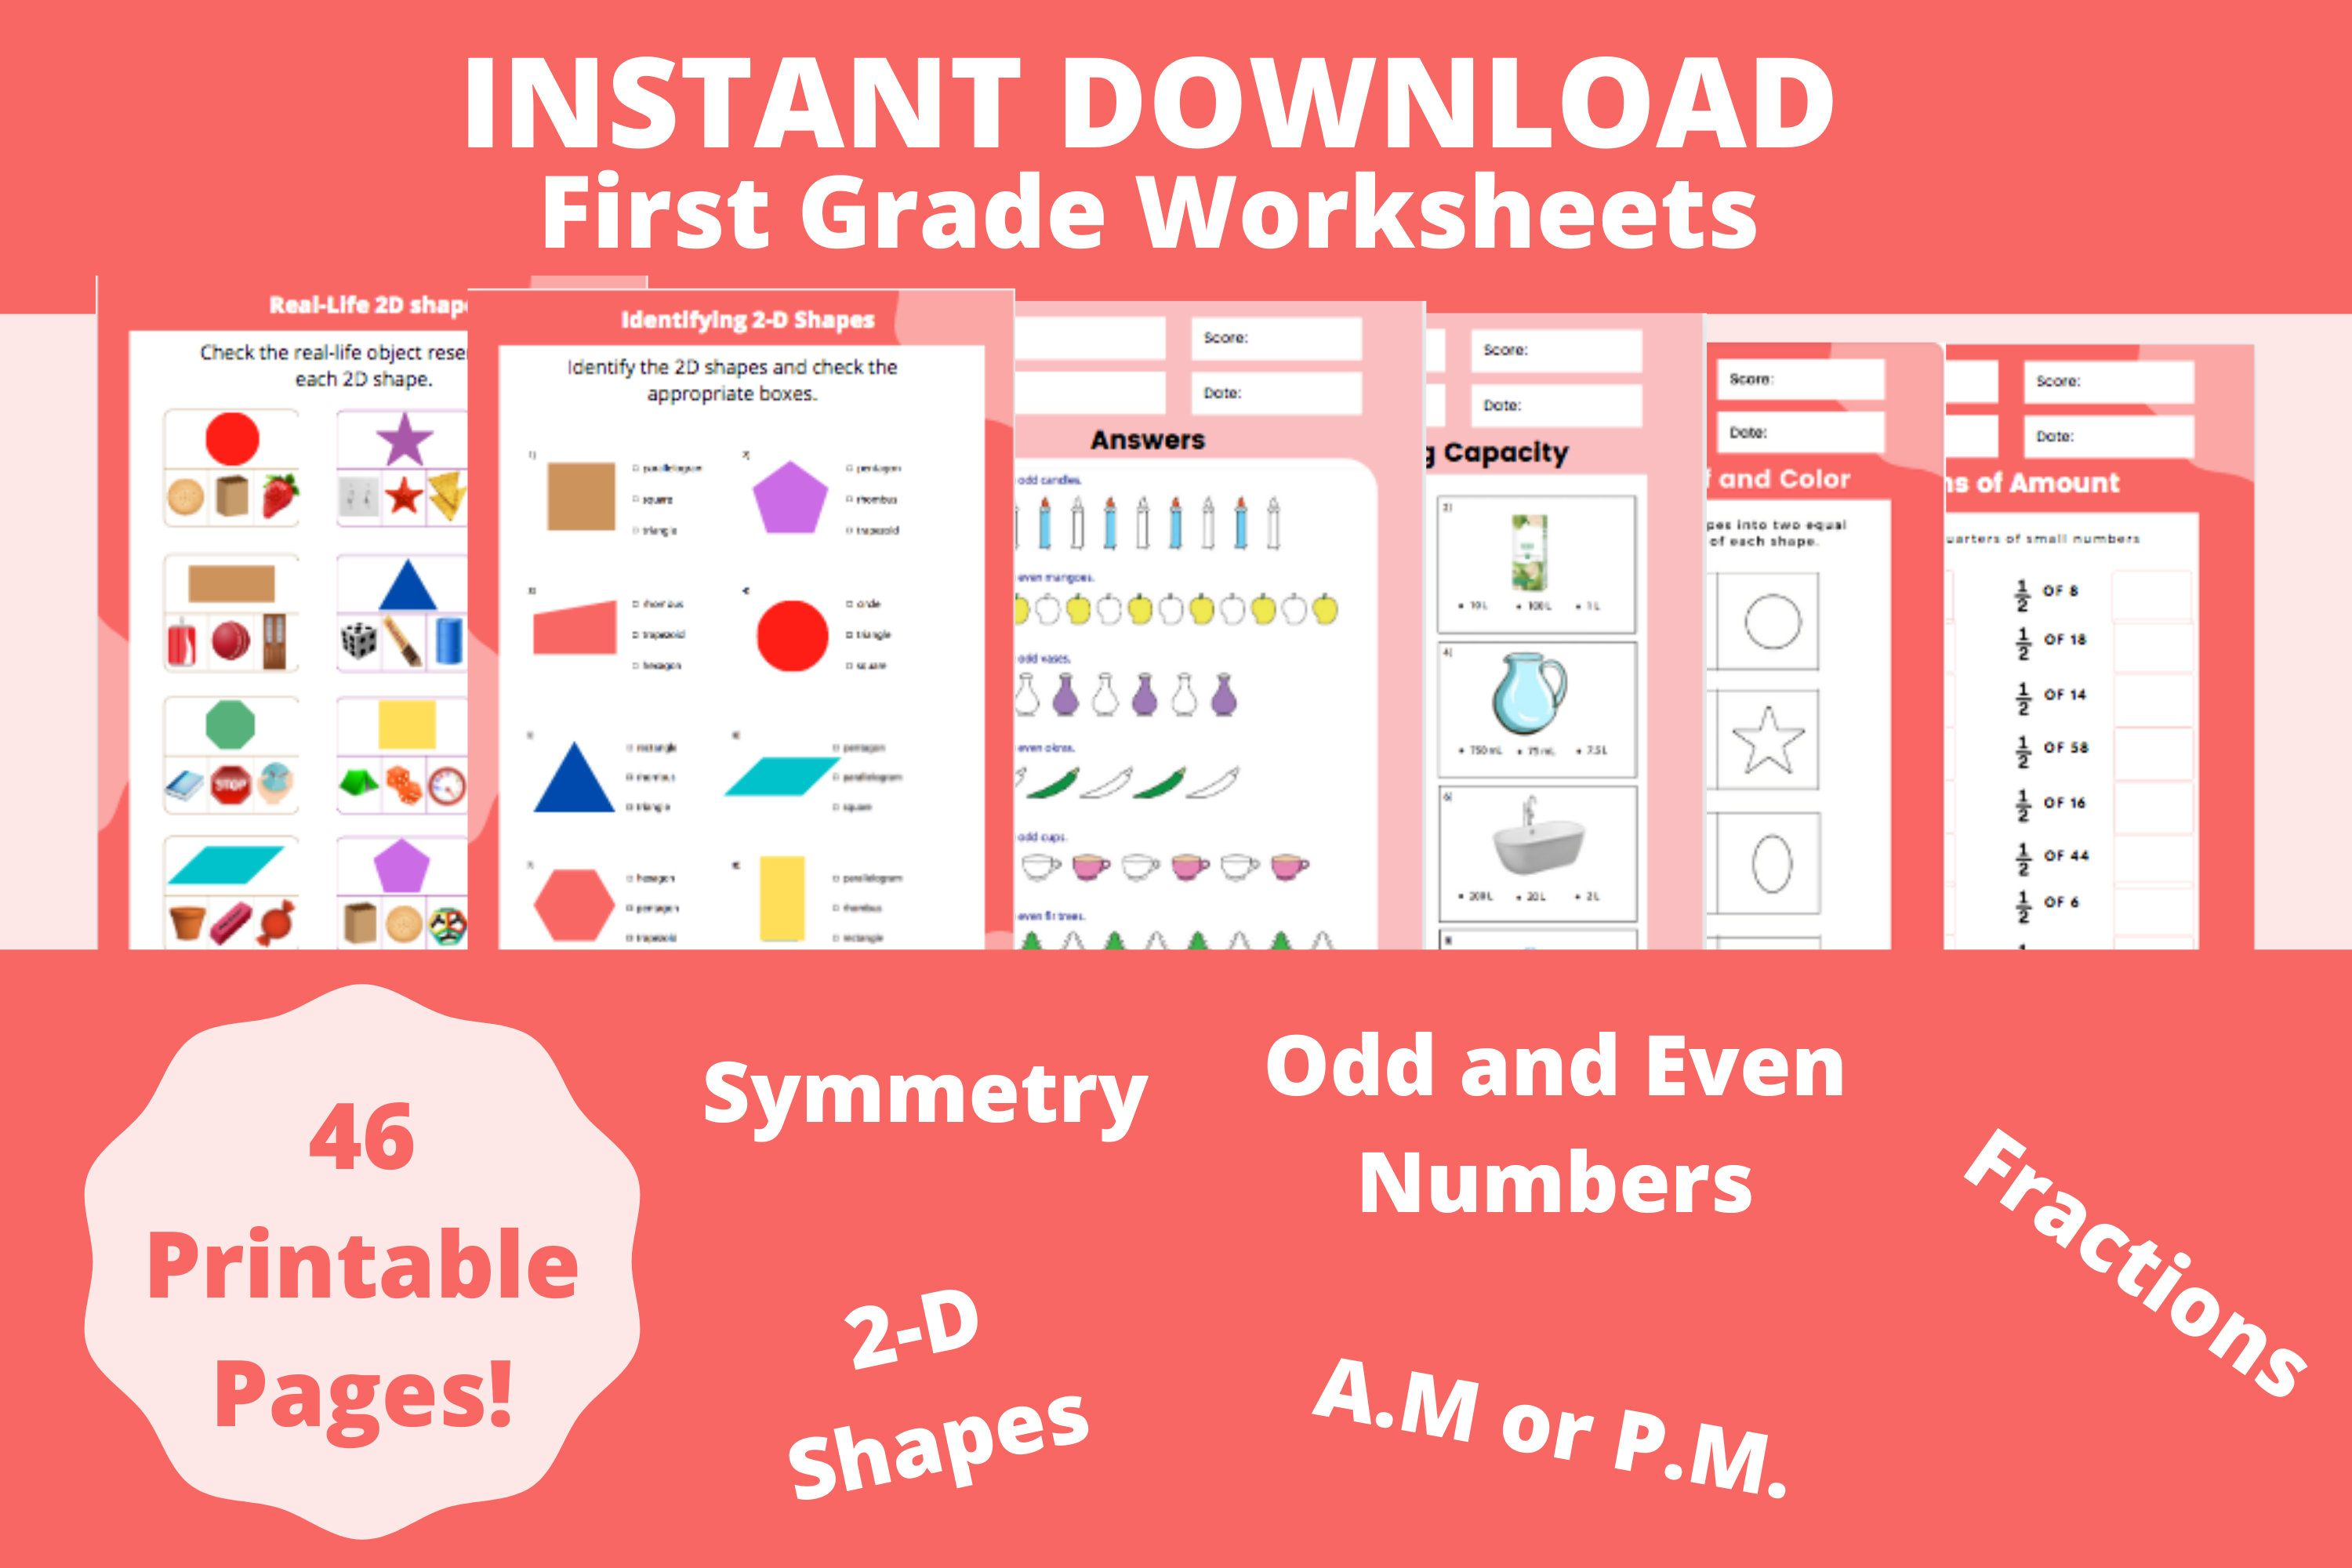 First Grade Worksheets Kids Activity Pages Printable